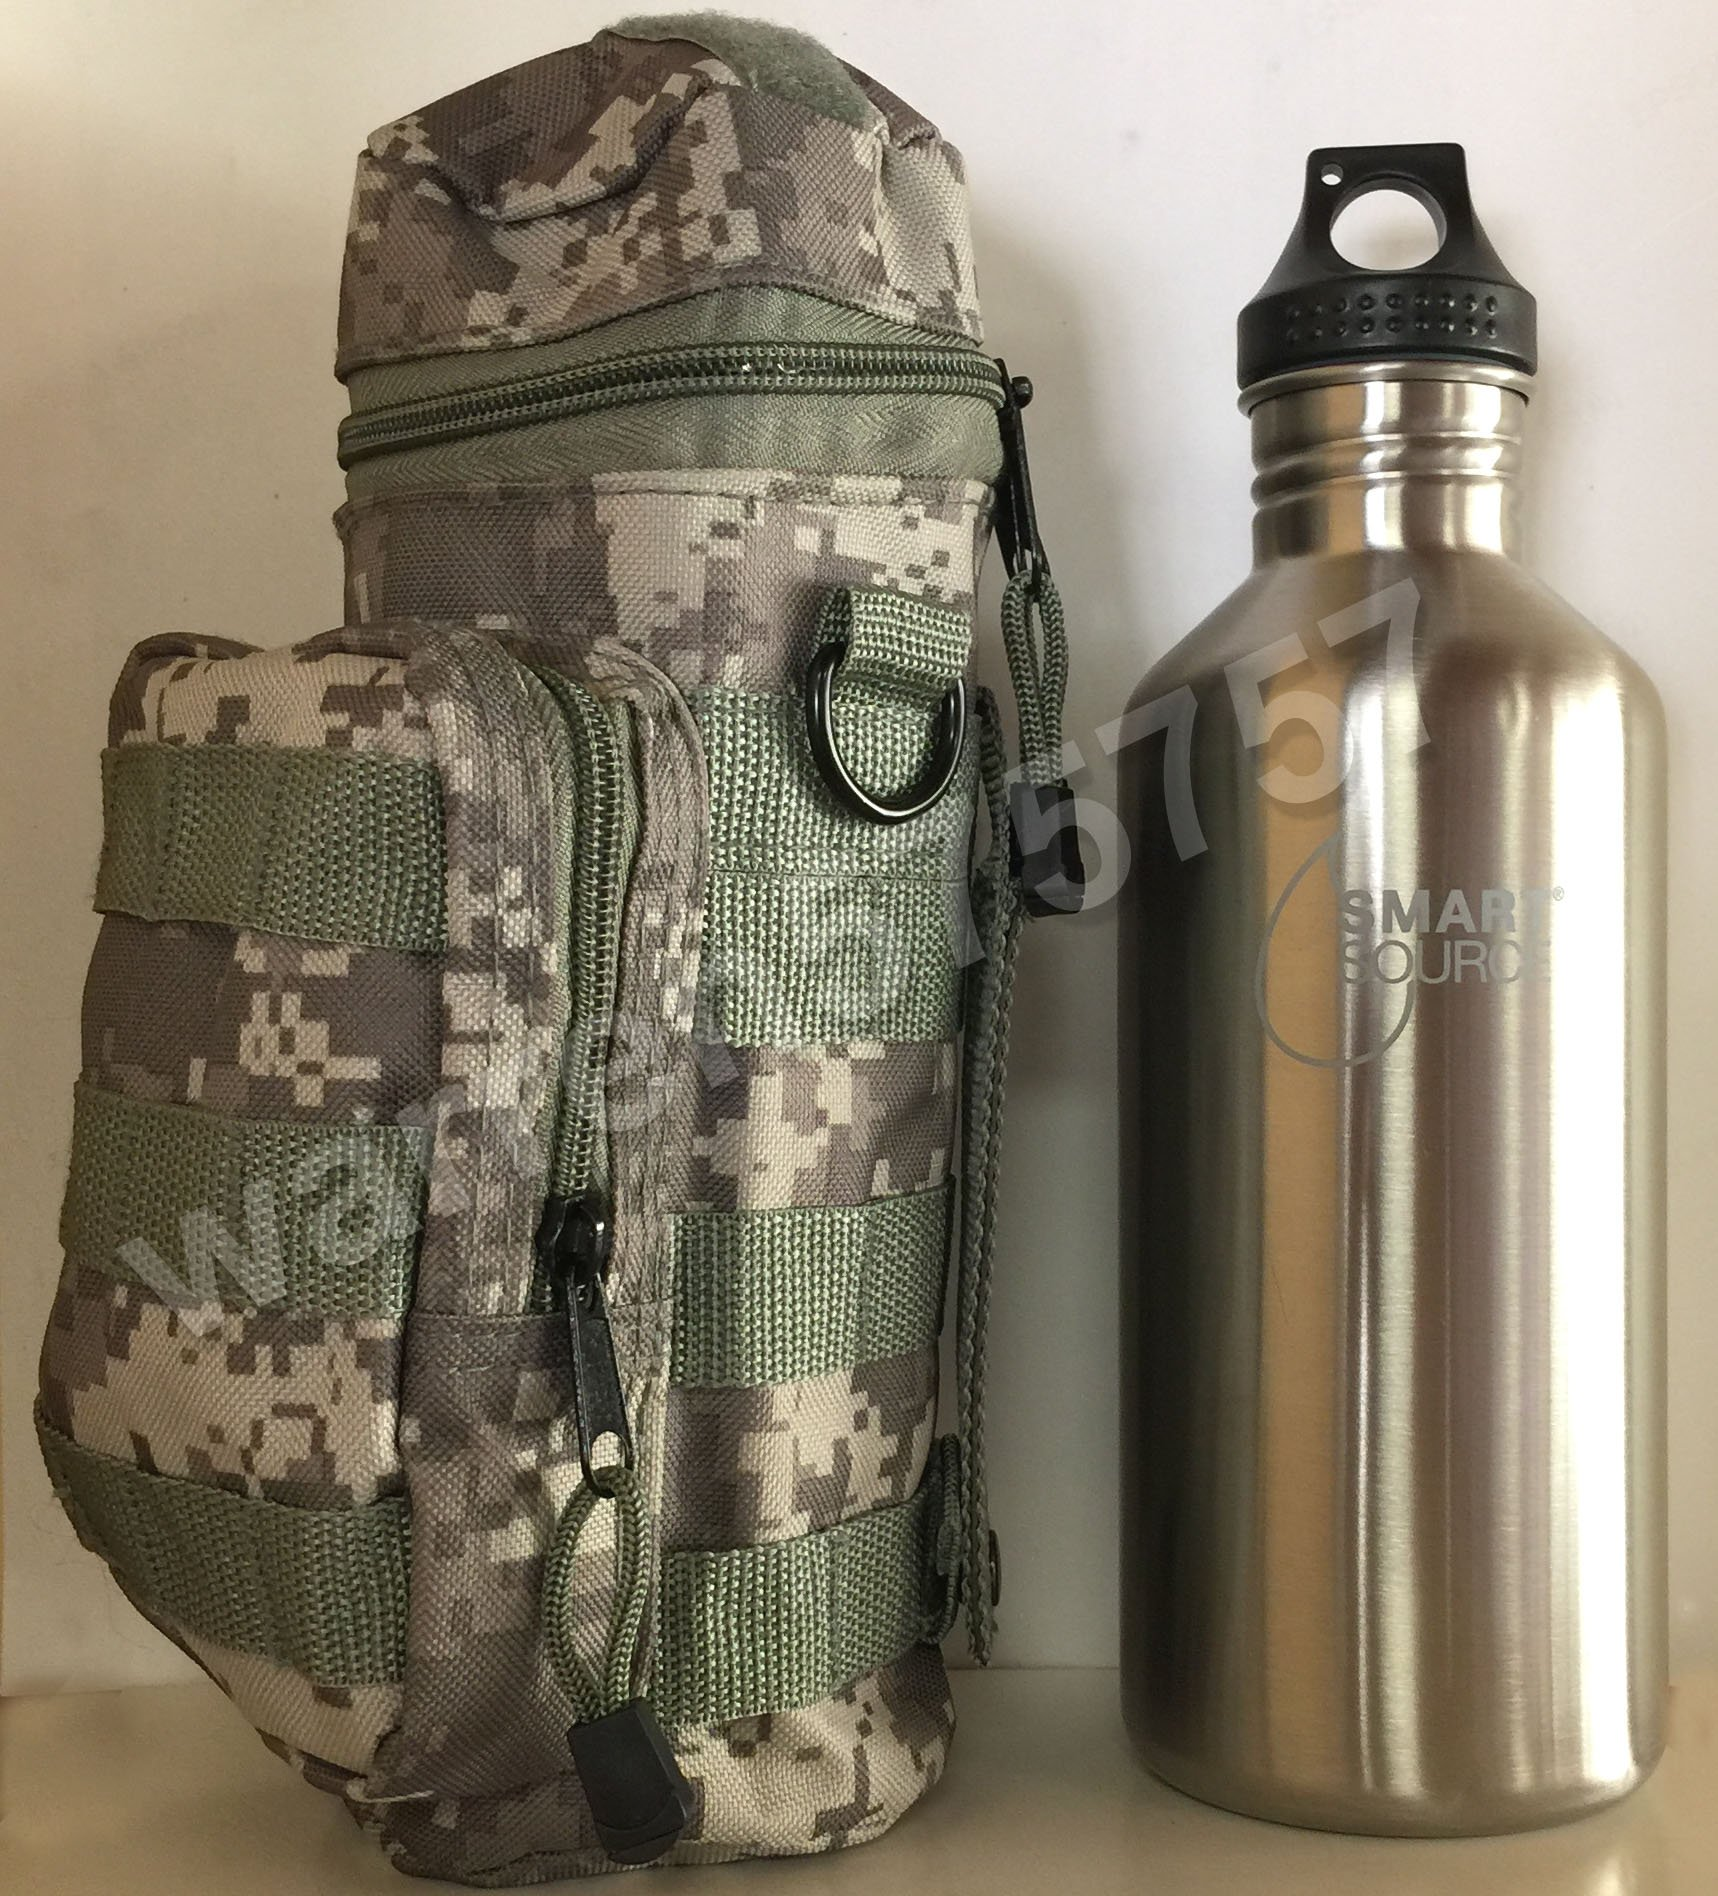 NEW SMART SOURCE WATER BOTTLE 40oz/1182ml SINGLE-WALL. With New Digital Camo Water Bottle MOLLE POUCH from Extreme Pak. by G.A.K